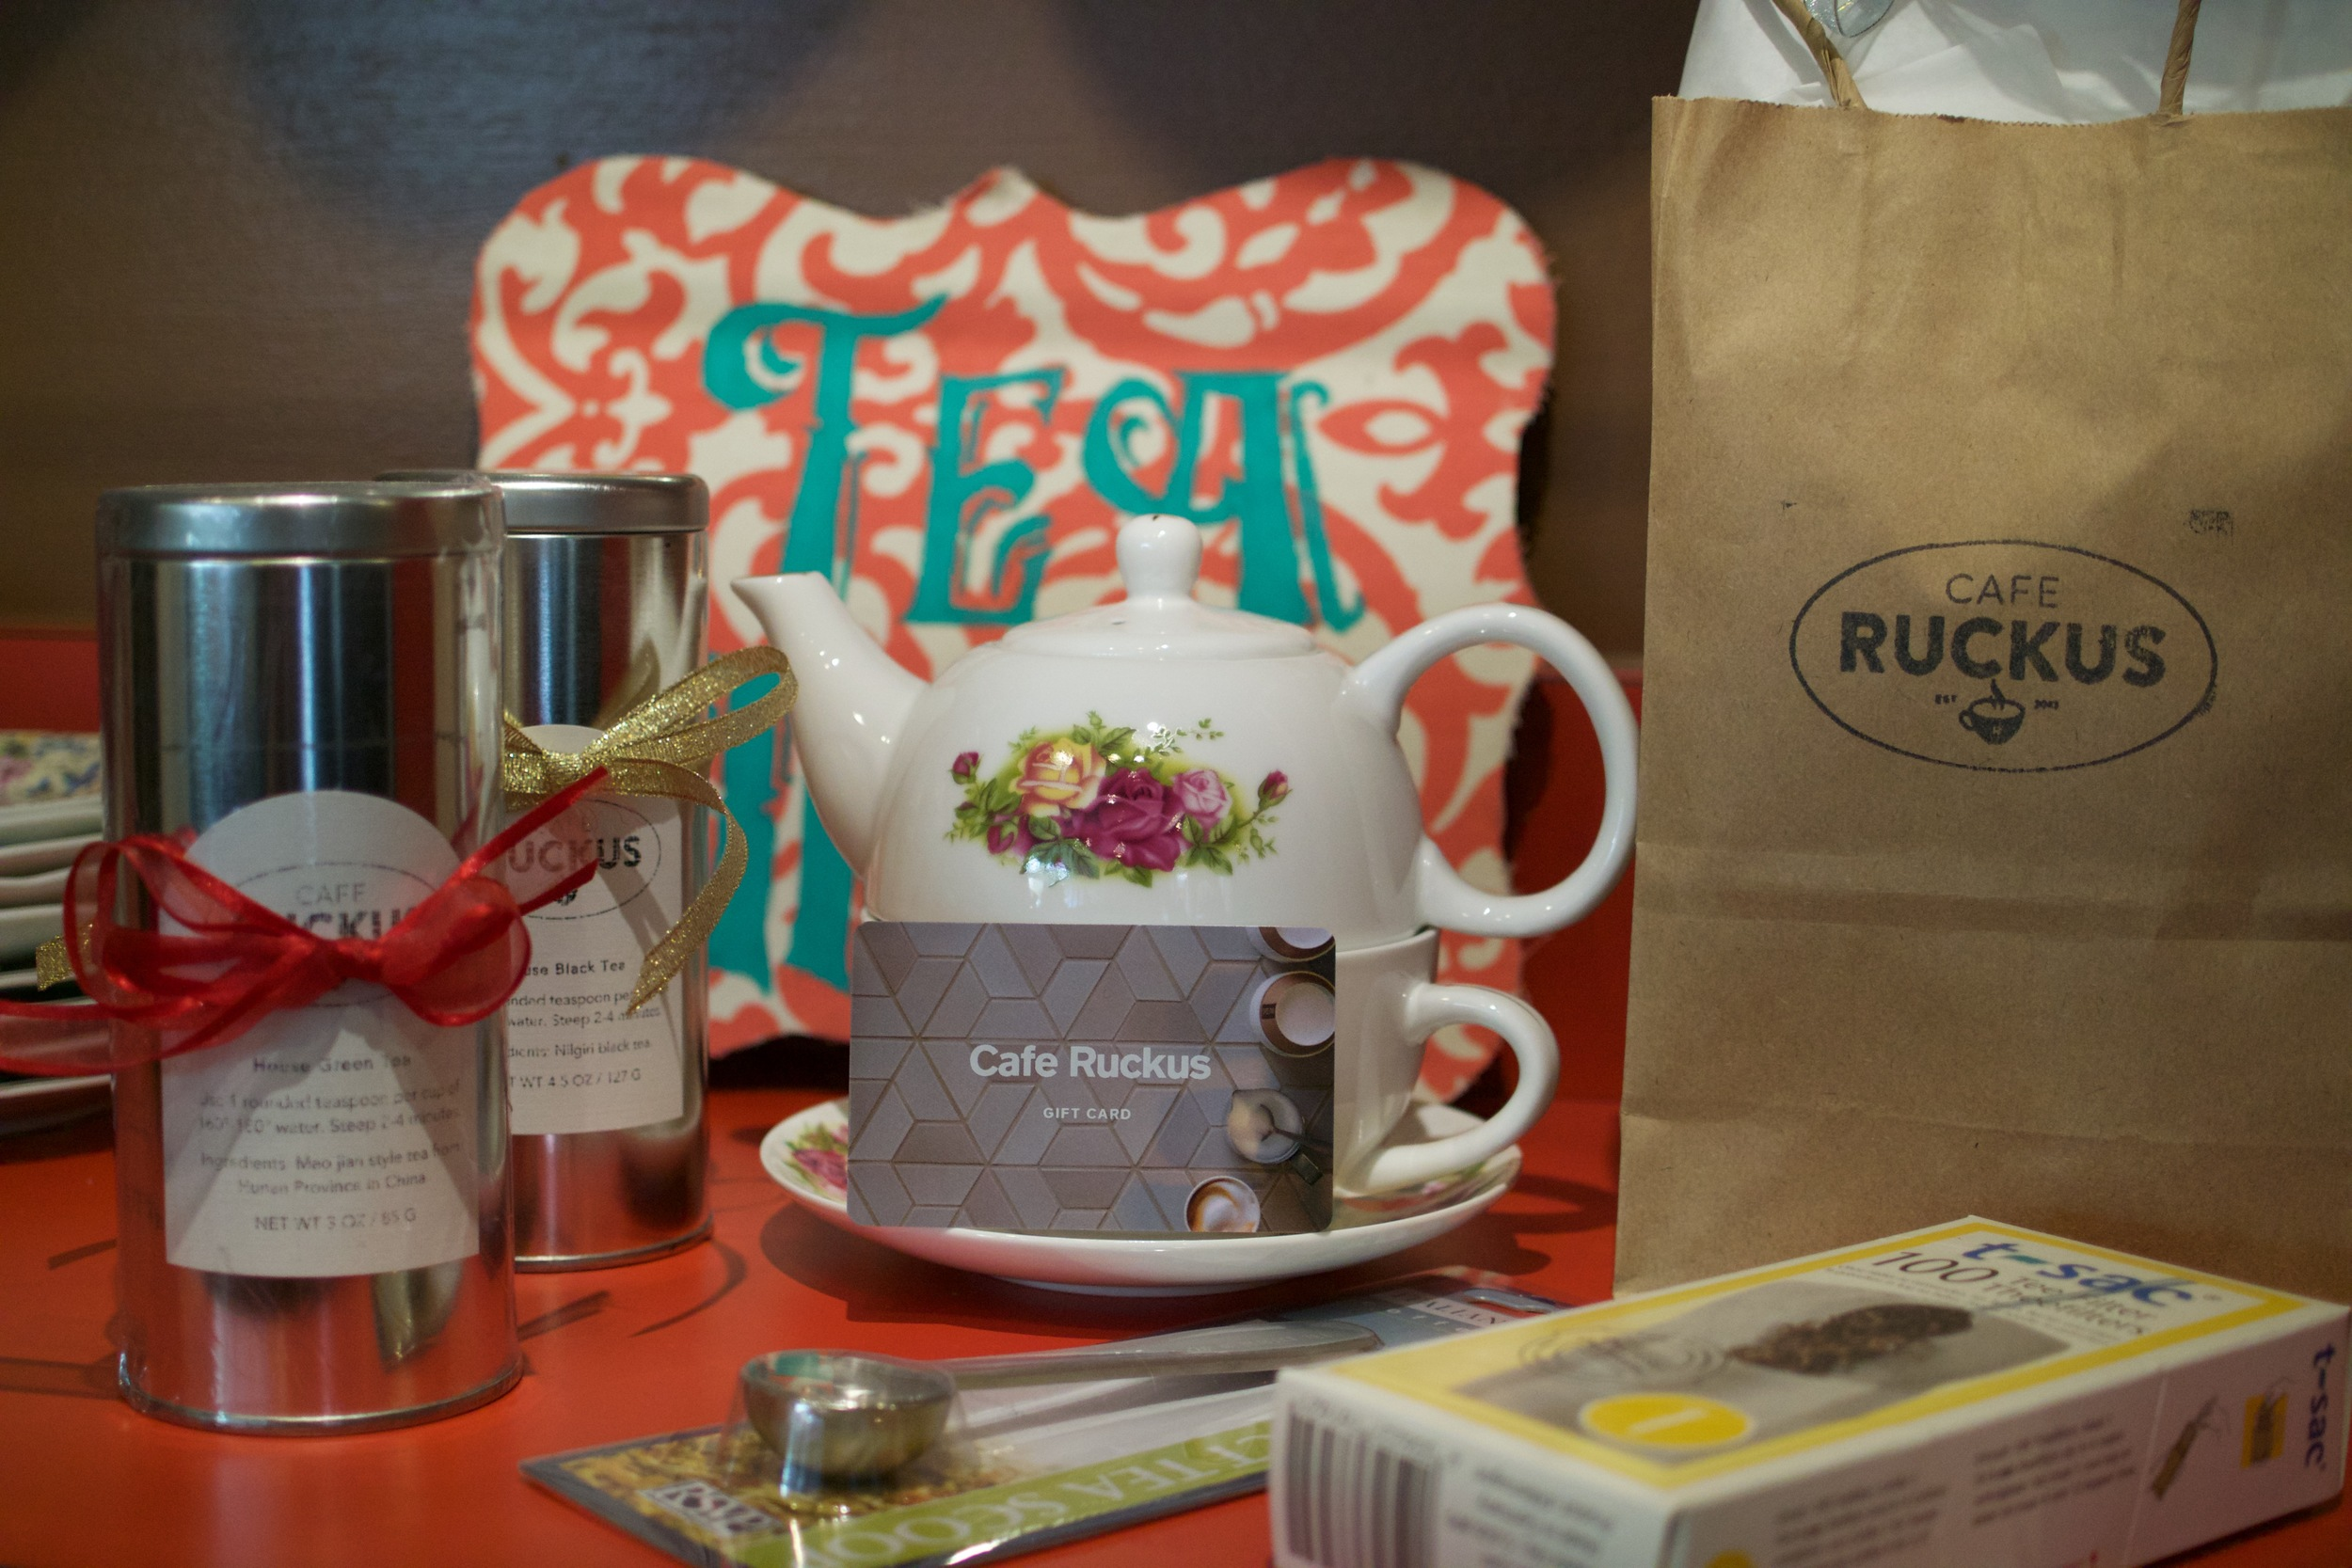 The Best Teas from Cafe Ruckus